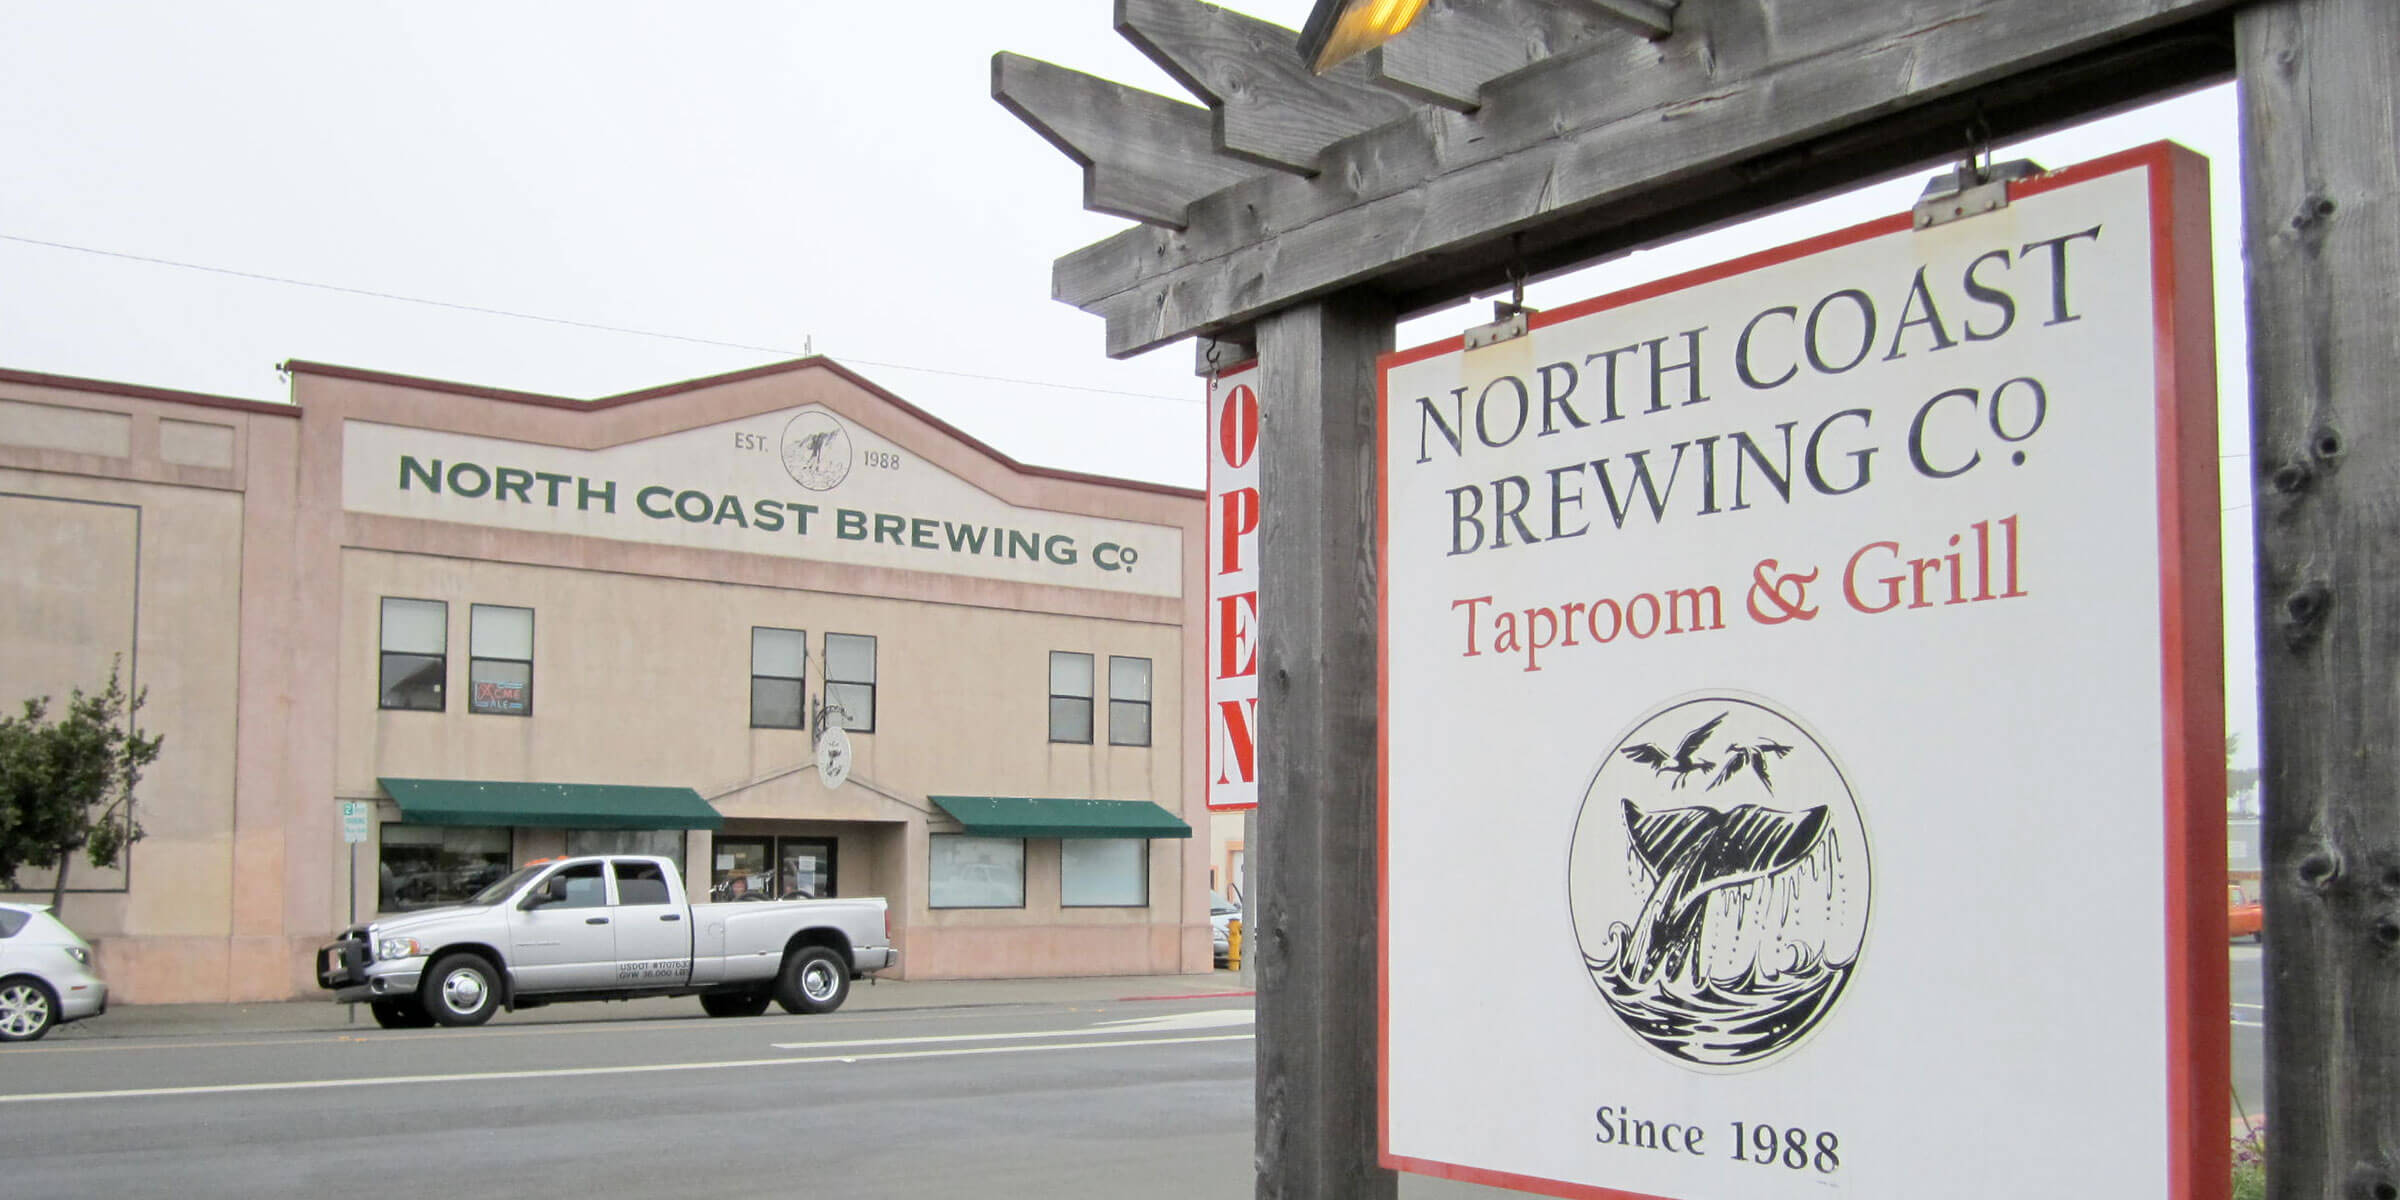 Signage outside the entrance to North Coast Brewing Co. in Fort Bragg, California